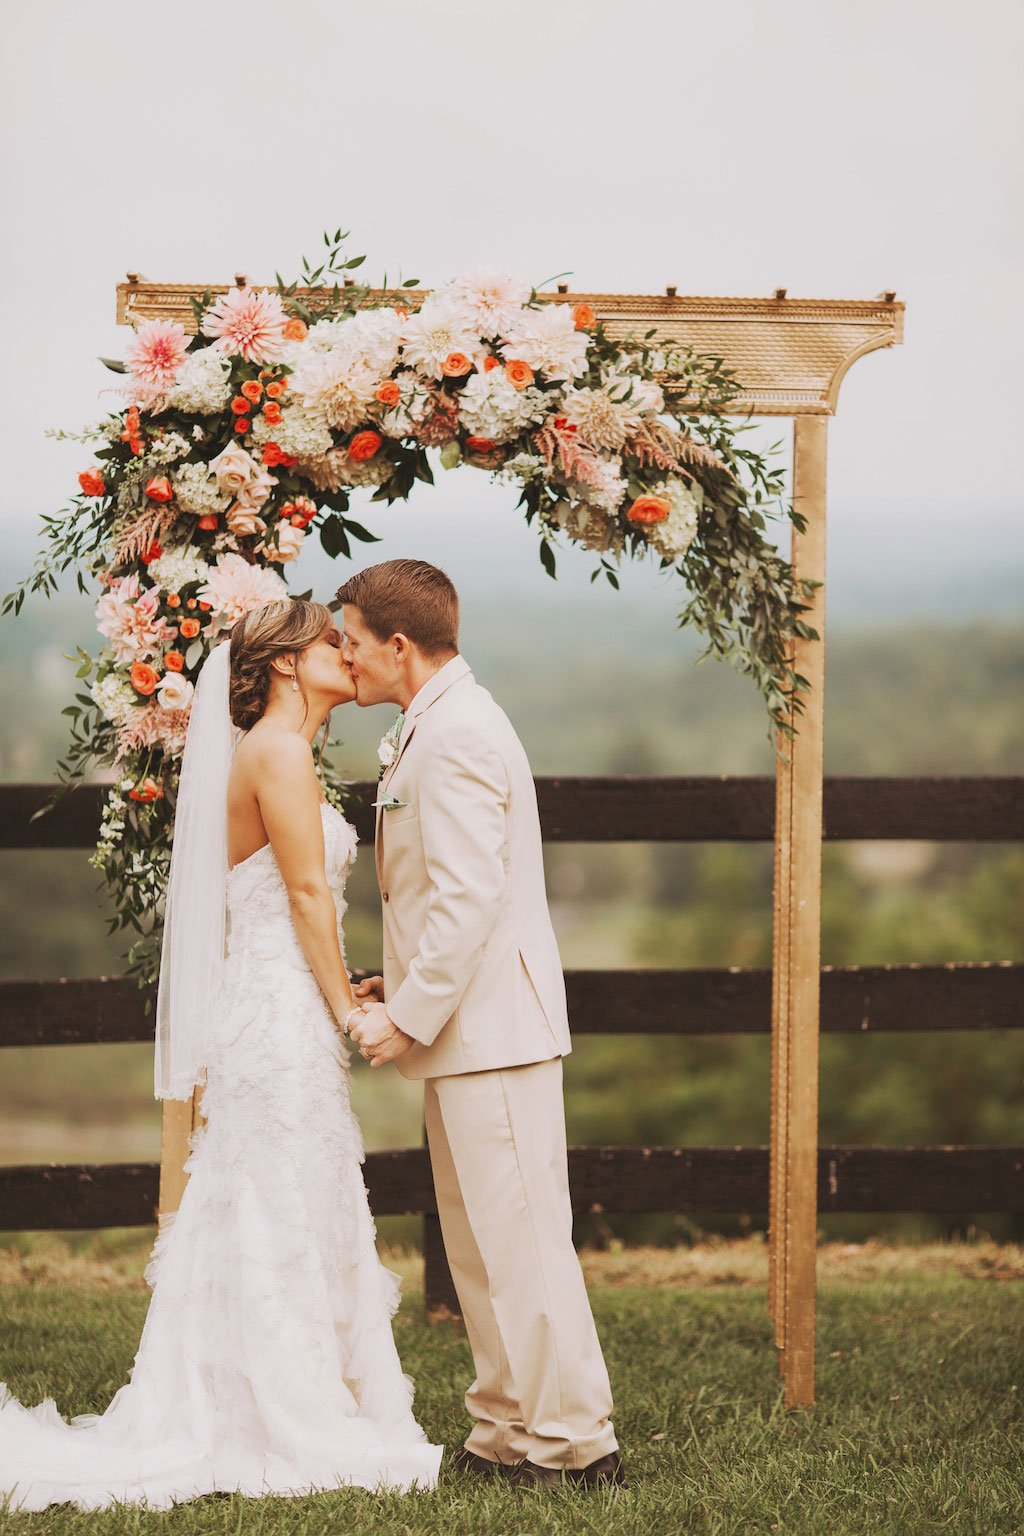 17 Times The Flowers At DC Weddings Totally Knocked Our Socks Off